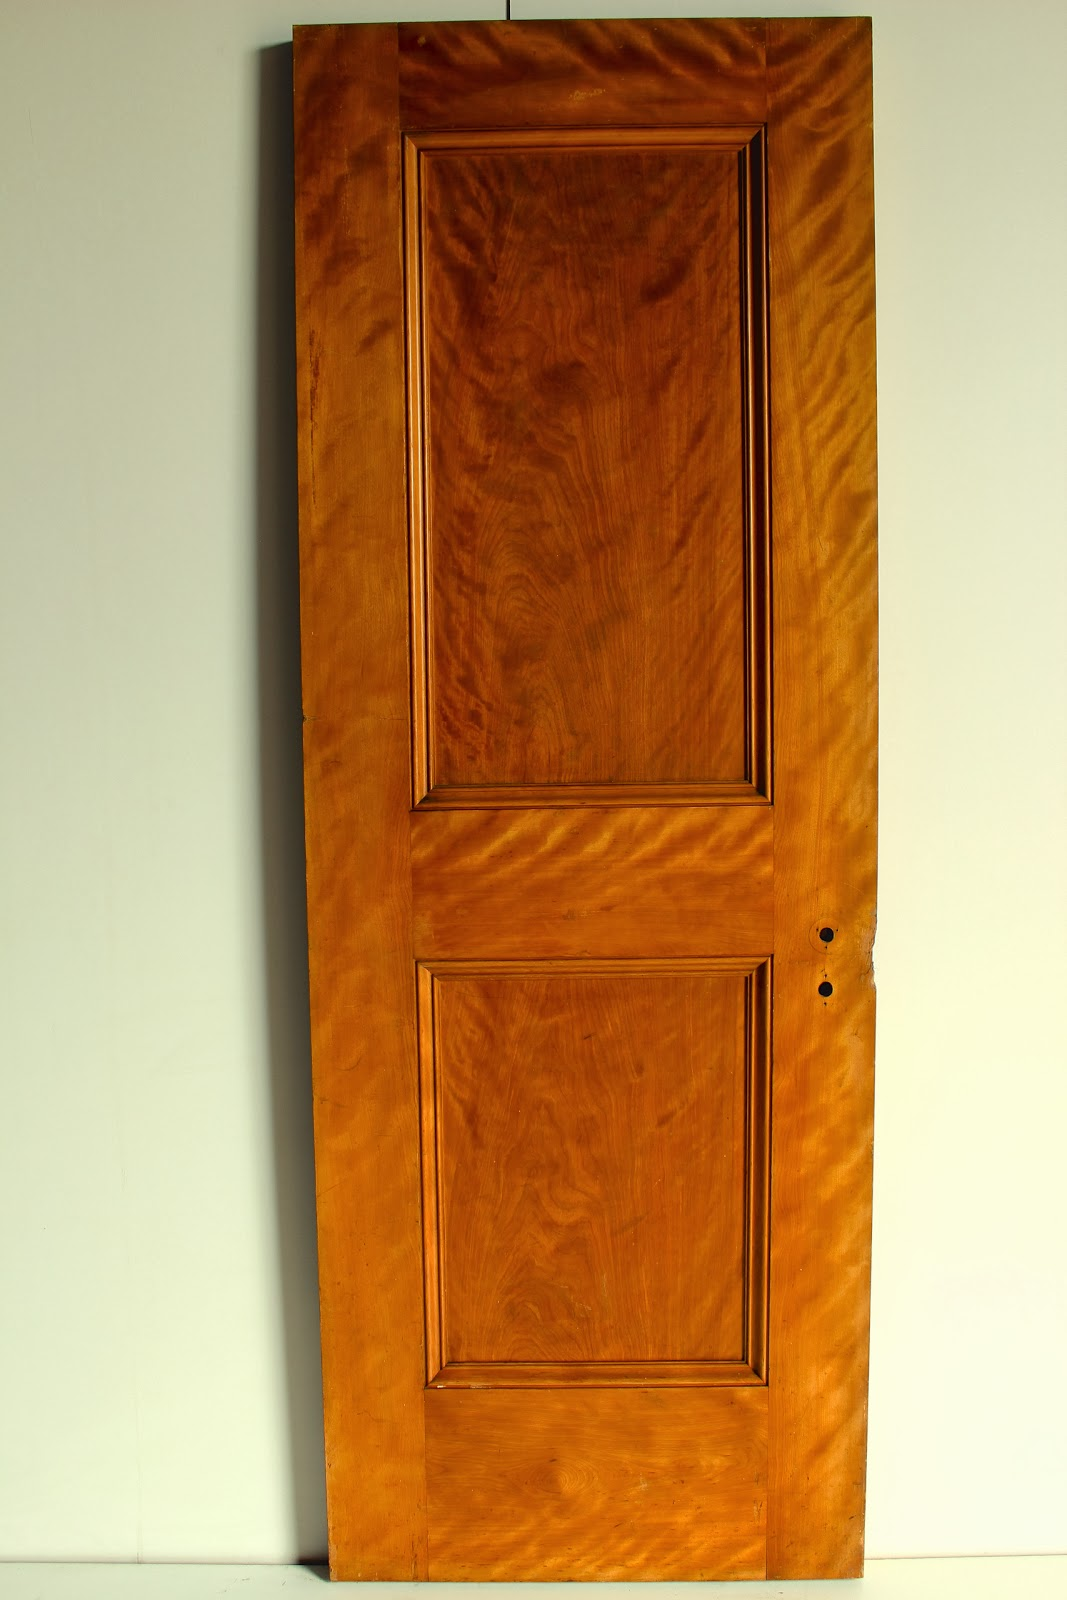 Curley Maple Paneled Doors Curley Maple Paneled Doors & Curley Maple Paneled Doors [08 14 33.10-0001] : Placmakers Inc ...